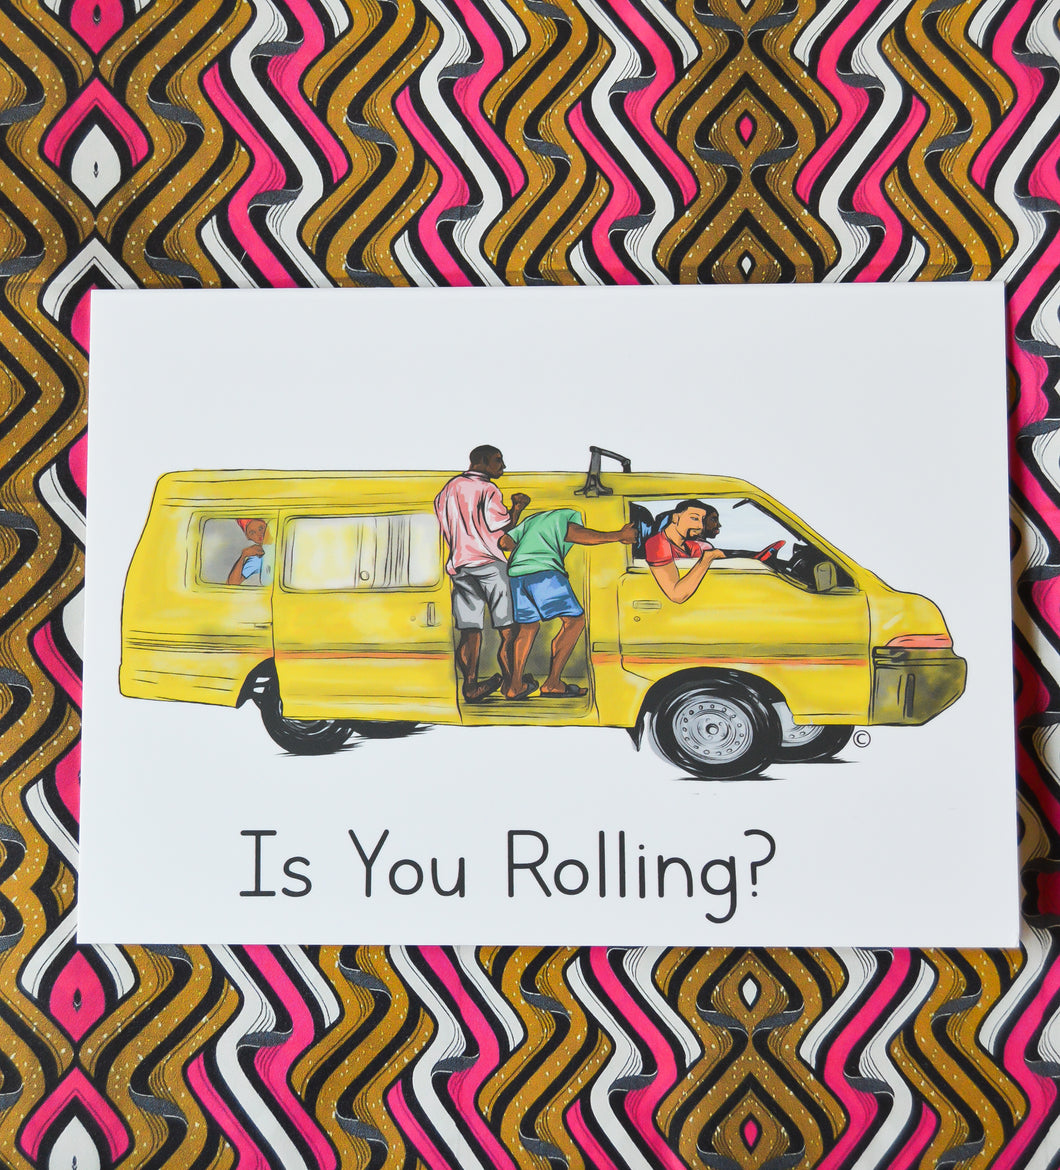 IS YOU ROLLING?